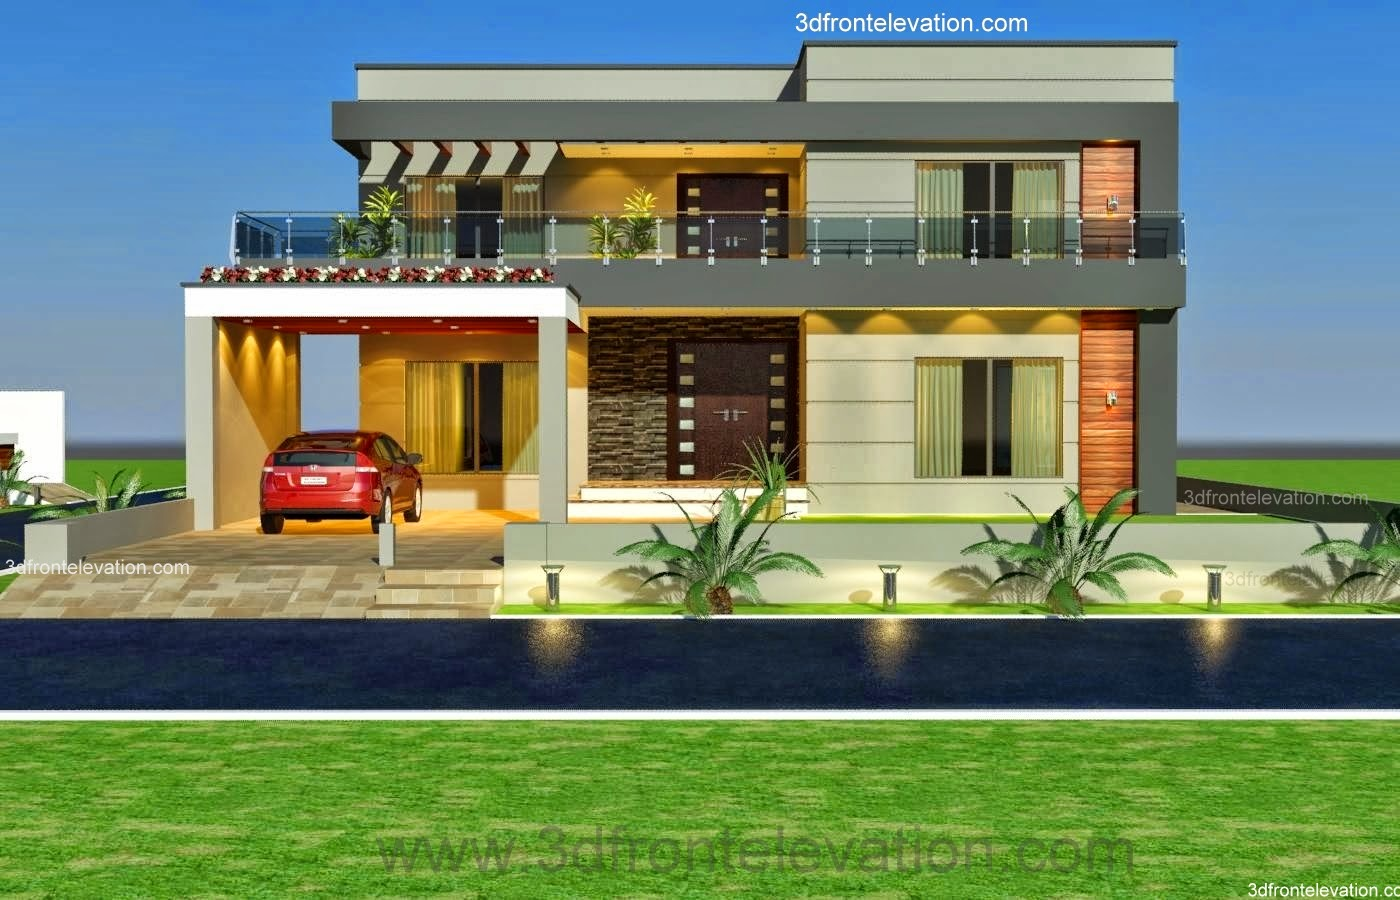 3d Front Elevation Concepts: 3D Front Elevation.com: 1 Kanal Old Style House Convert In